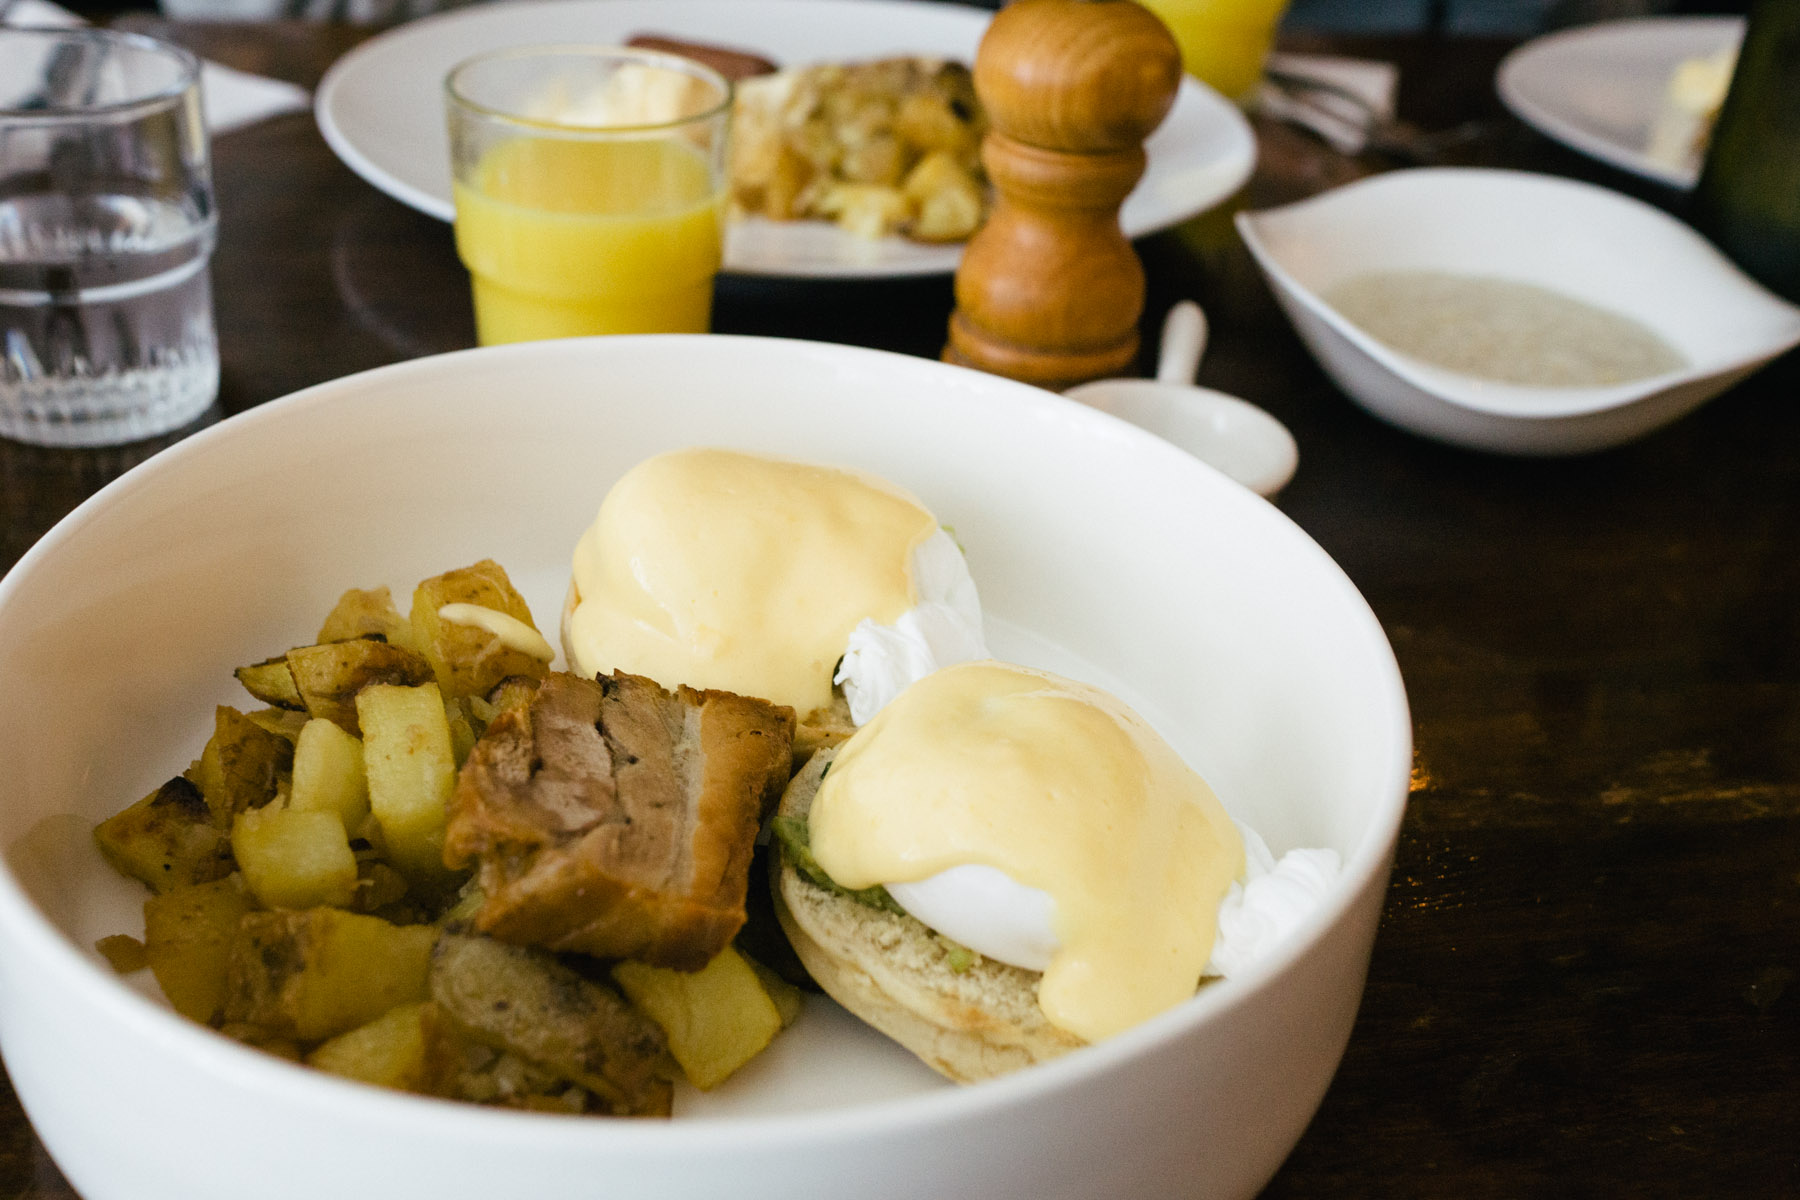 amsterdam-netherlands-jordaan-westerstraat-restaurante-fraiche-brunch-dinner-1